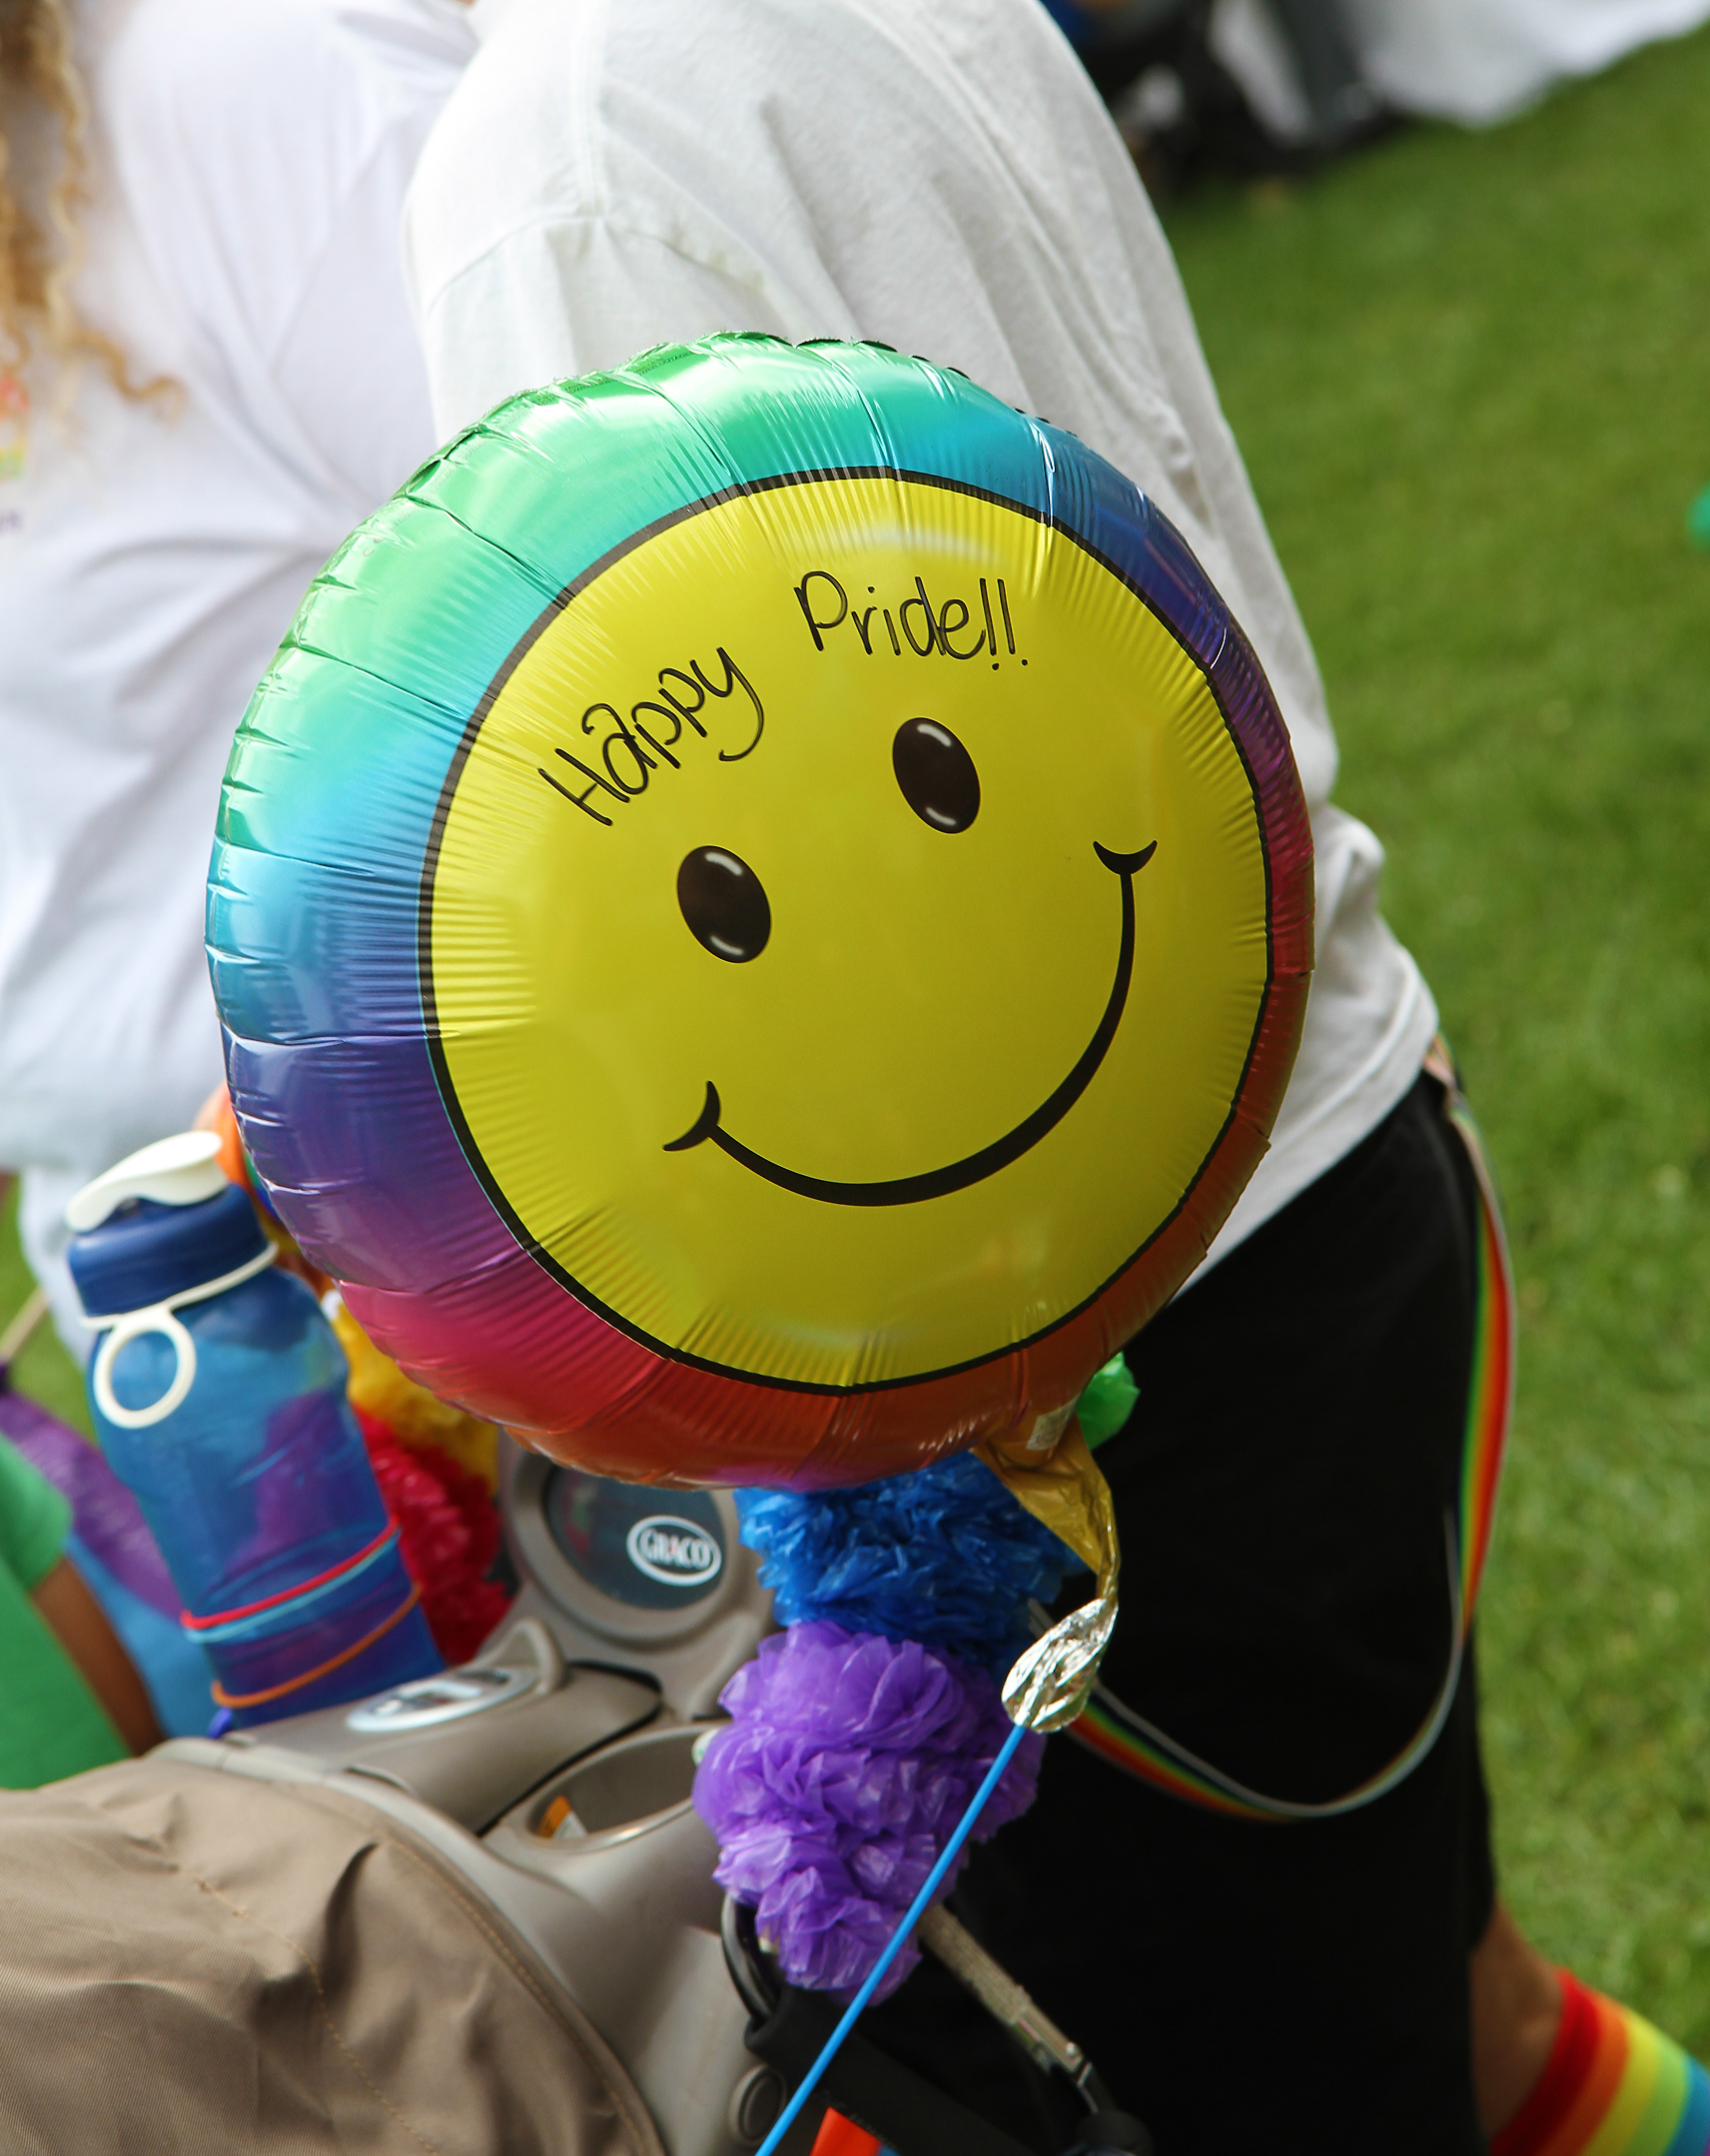 PP Happy pride balloon